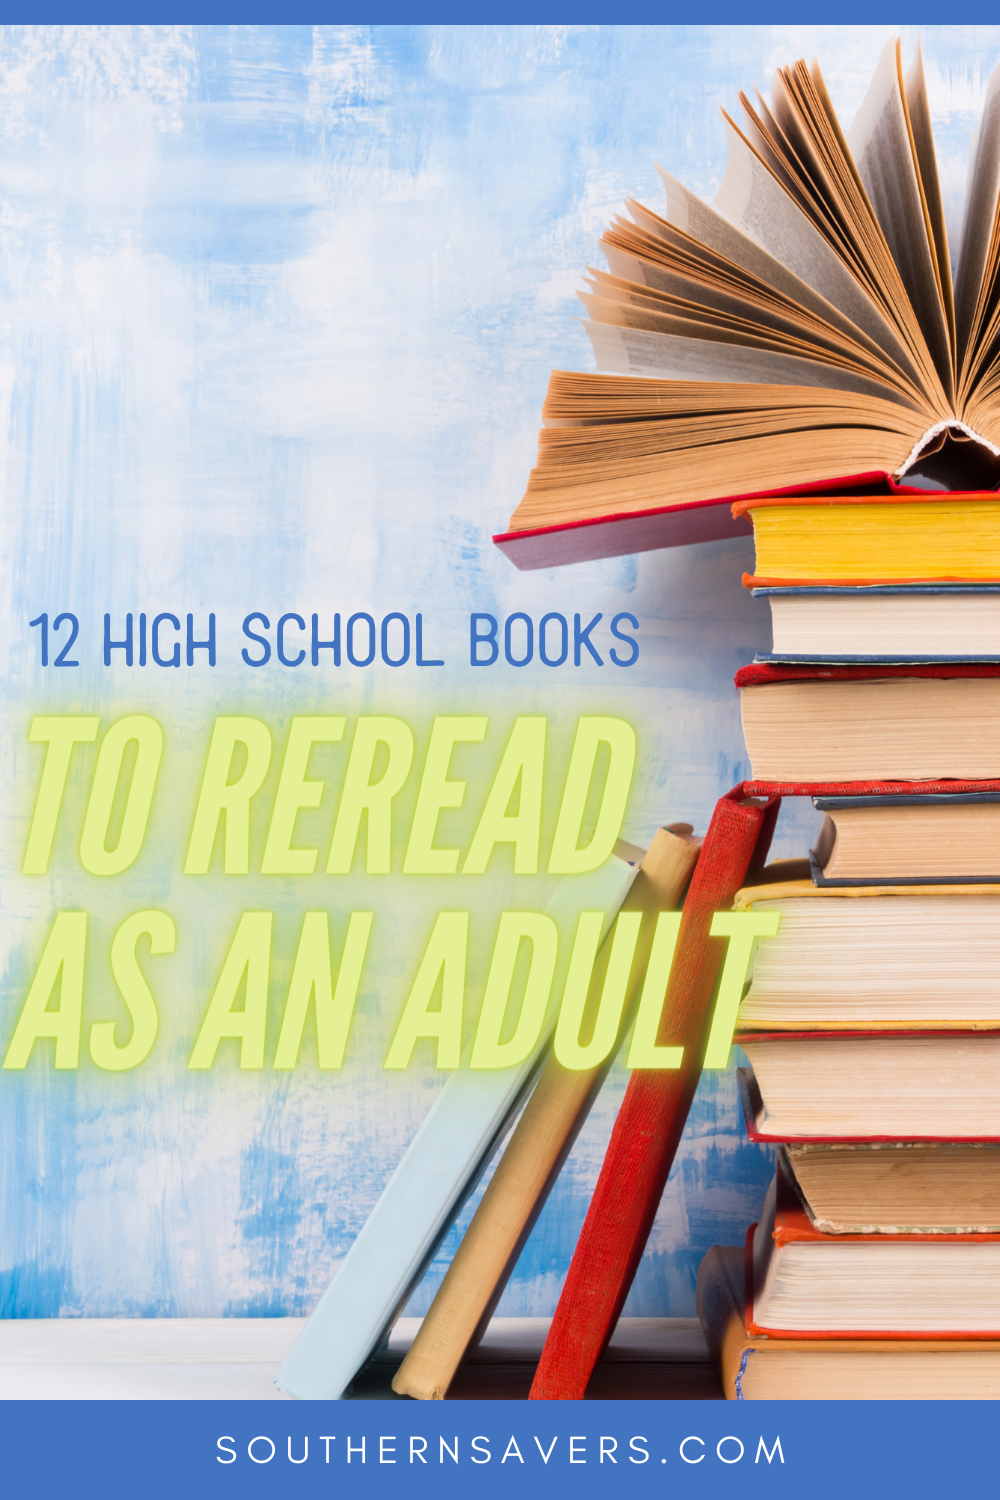 12 High School Books to Reread as an Adult